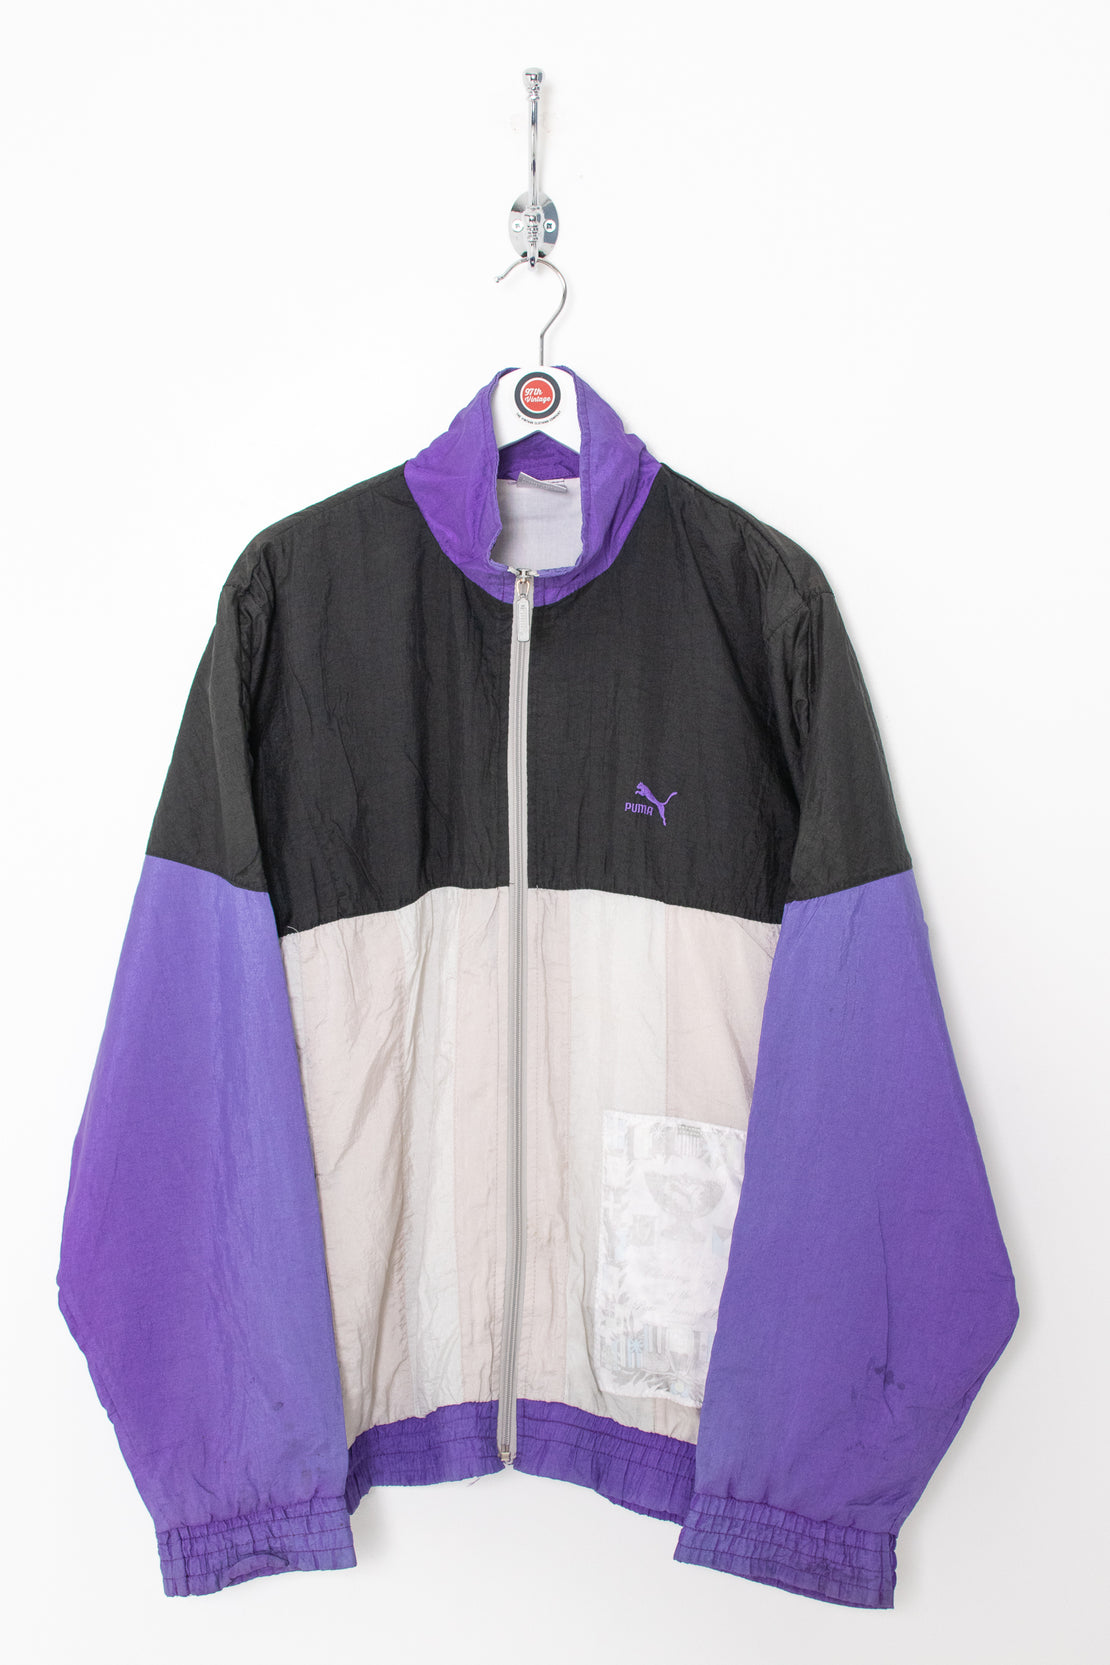 Puma Shell Suit Jacket (L)